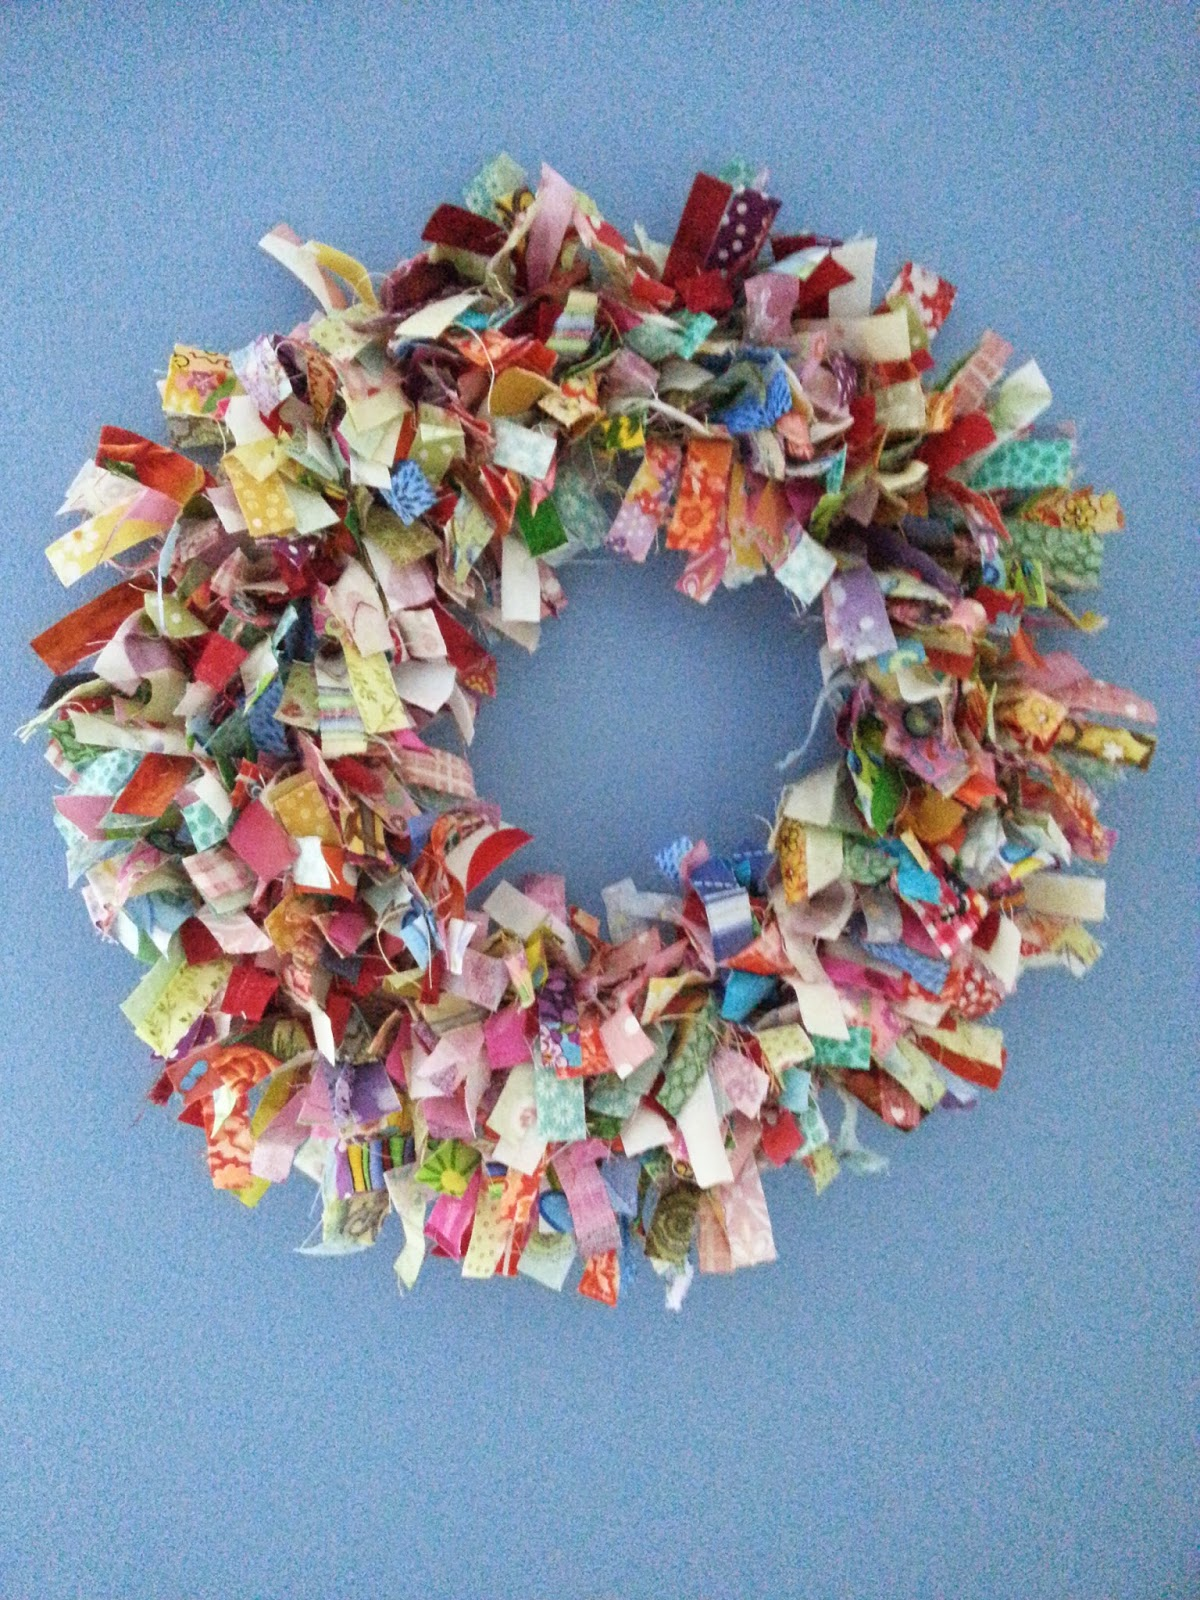 Naptime Stitching No Sew Fabric Wreath Tutorial